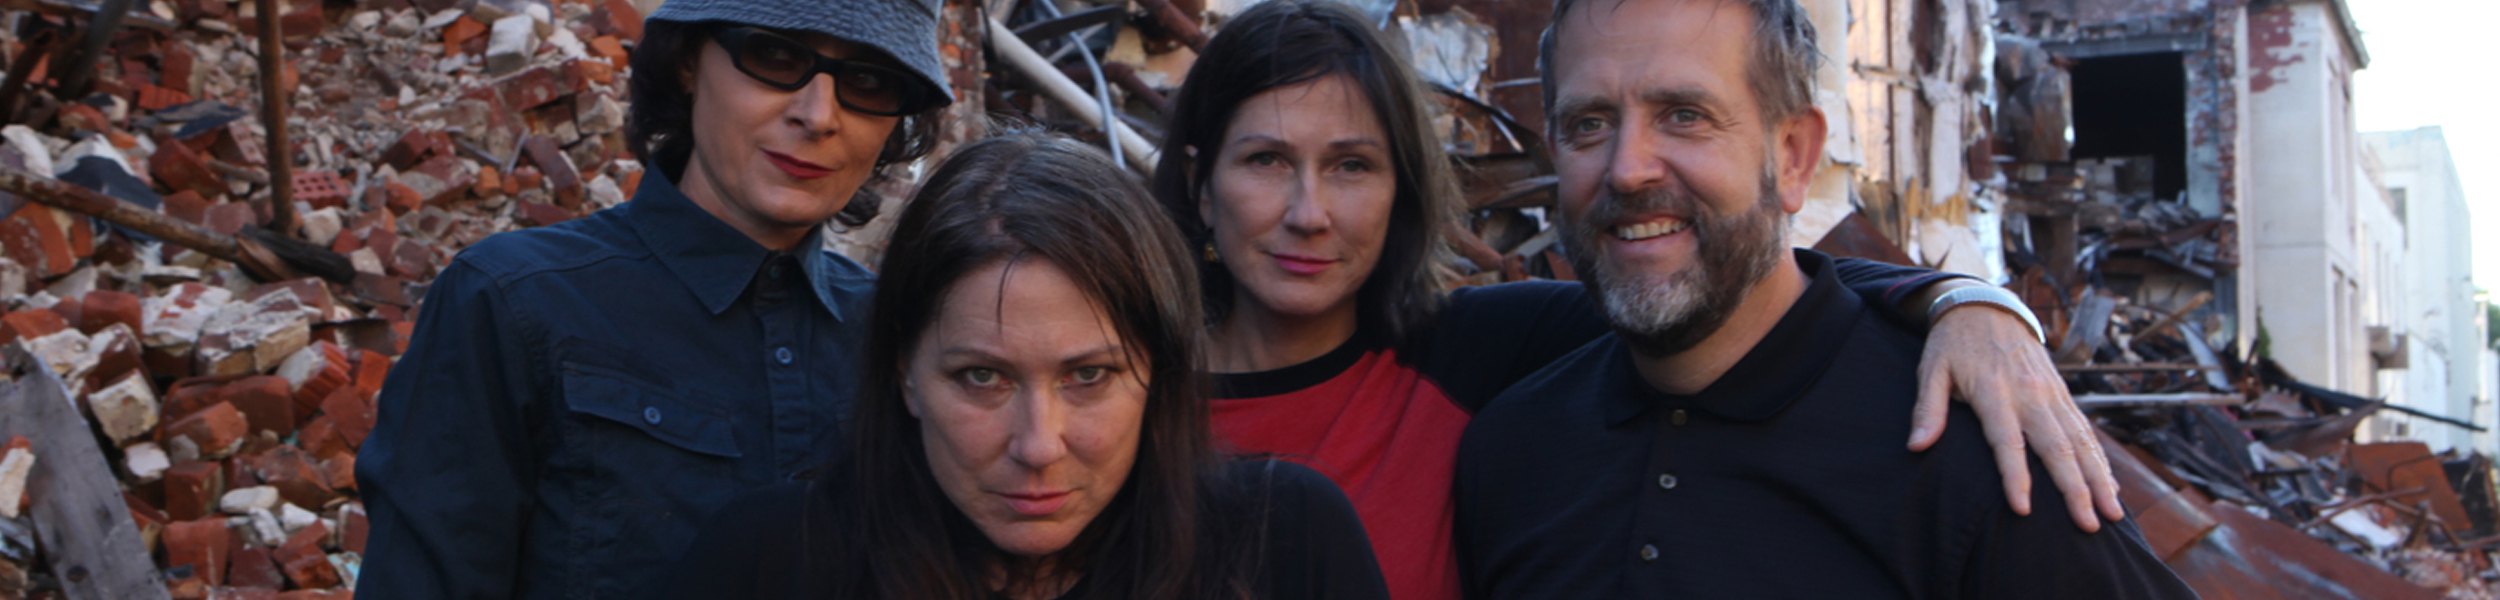 The Breeders - The Breeders 'LSXX' Vinyl Boxset On Shelves Soon